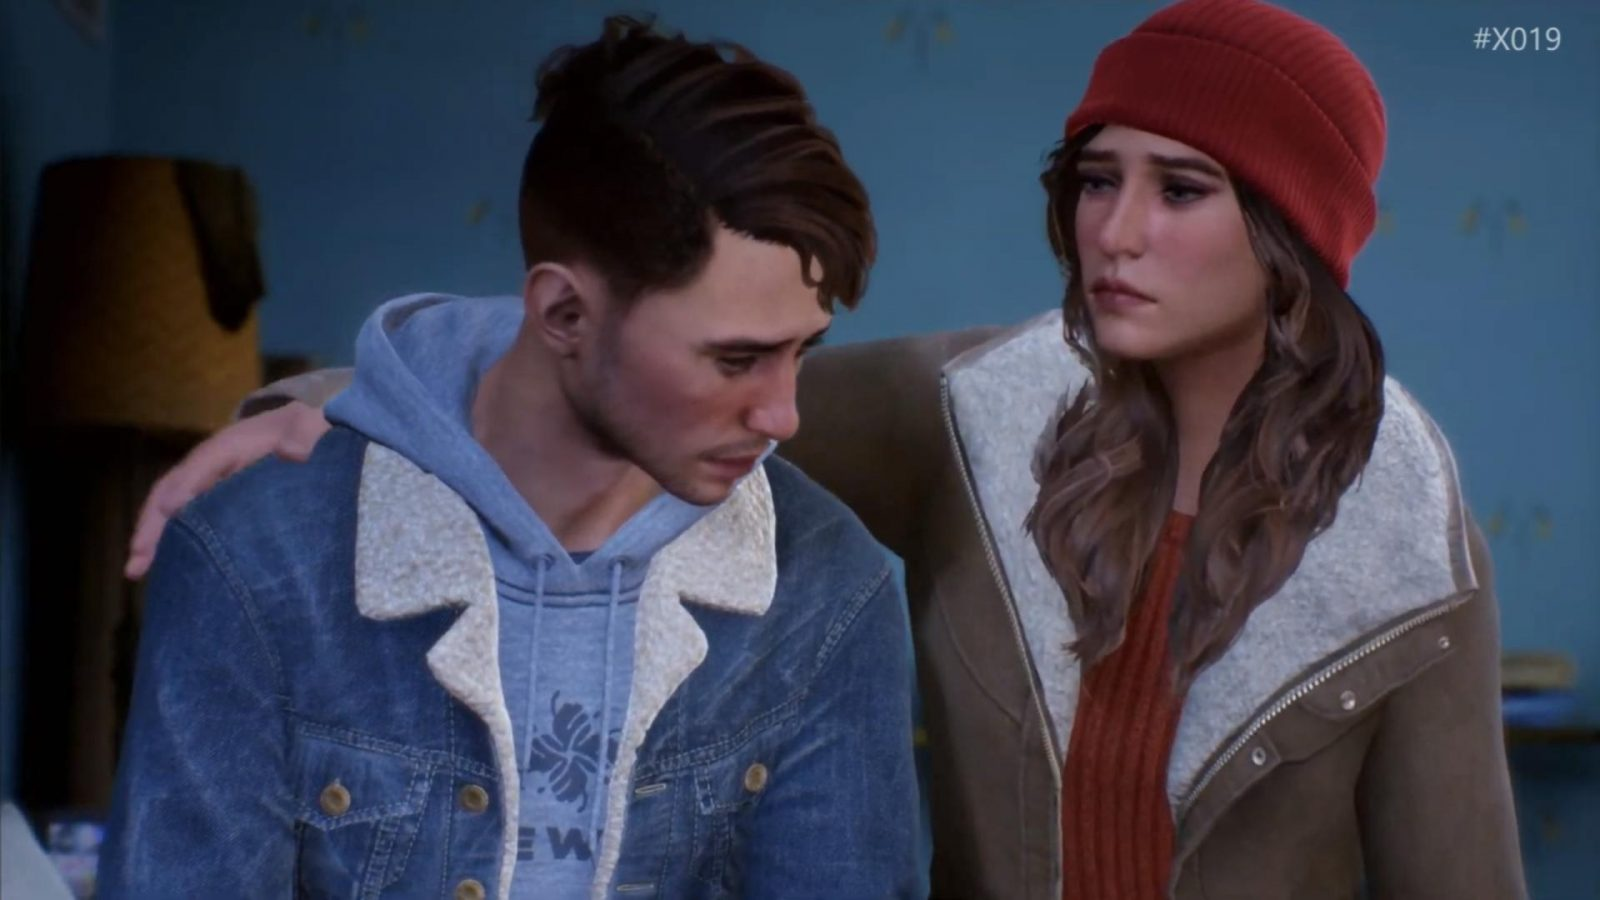 Life is Strange Developer's New Game Will Explore Memories and the Trans Experience Through Twins